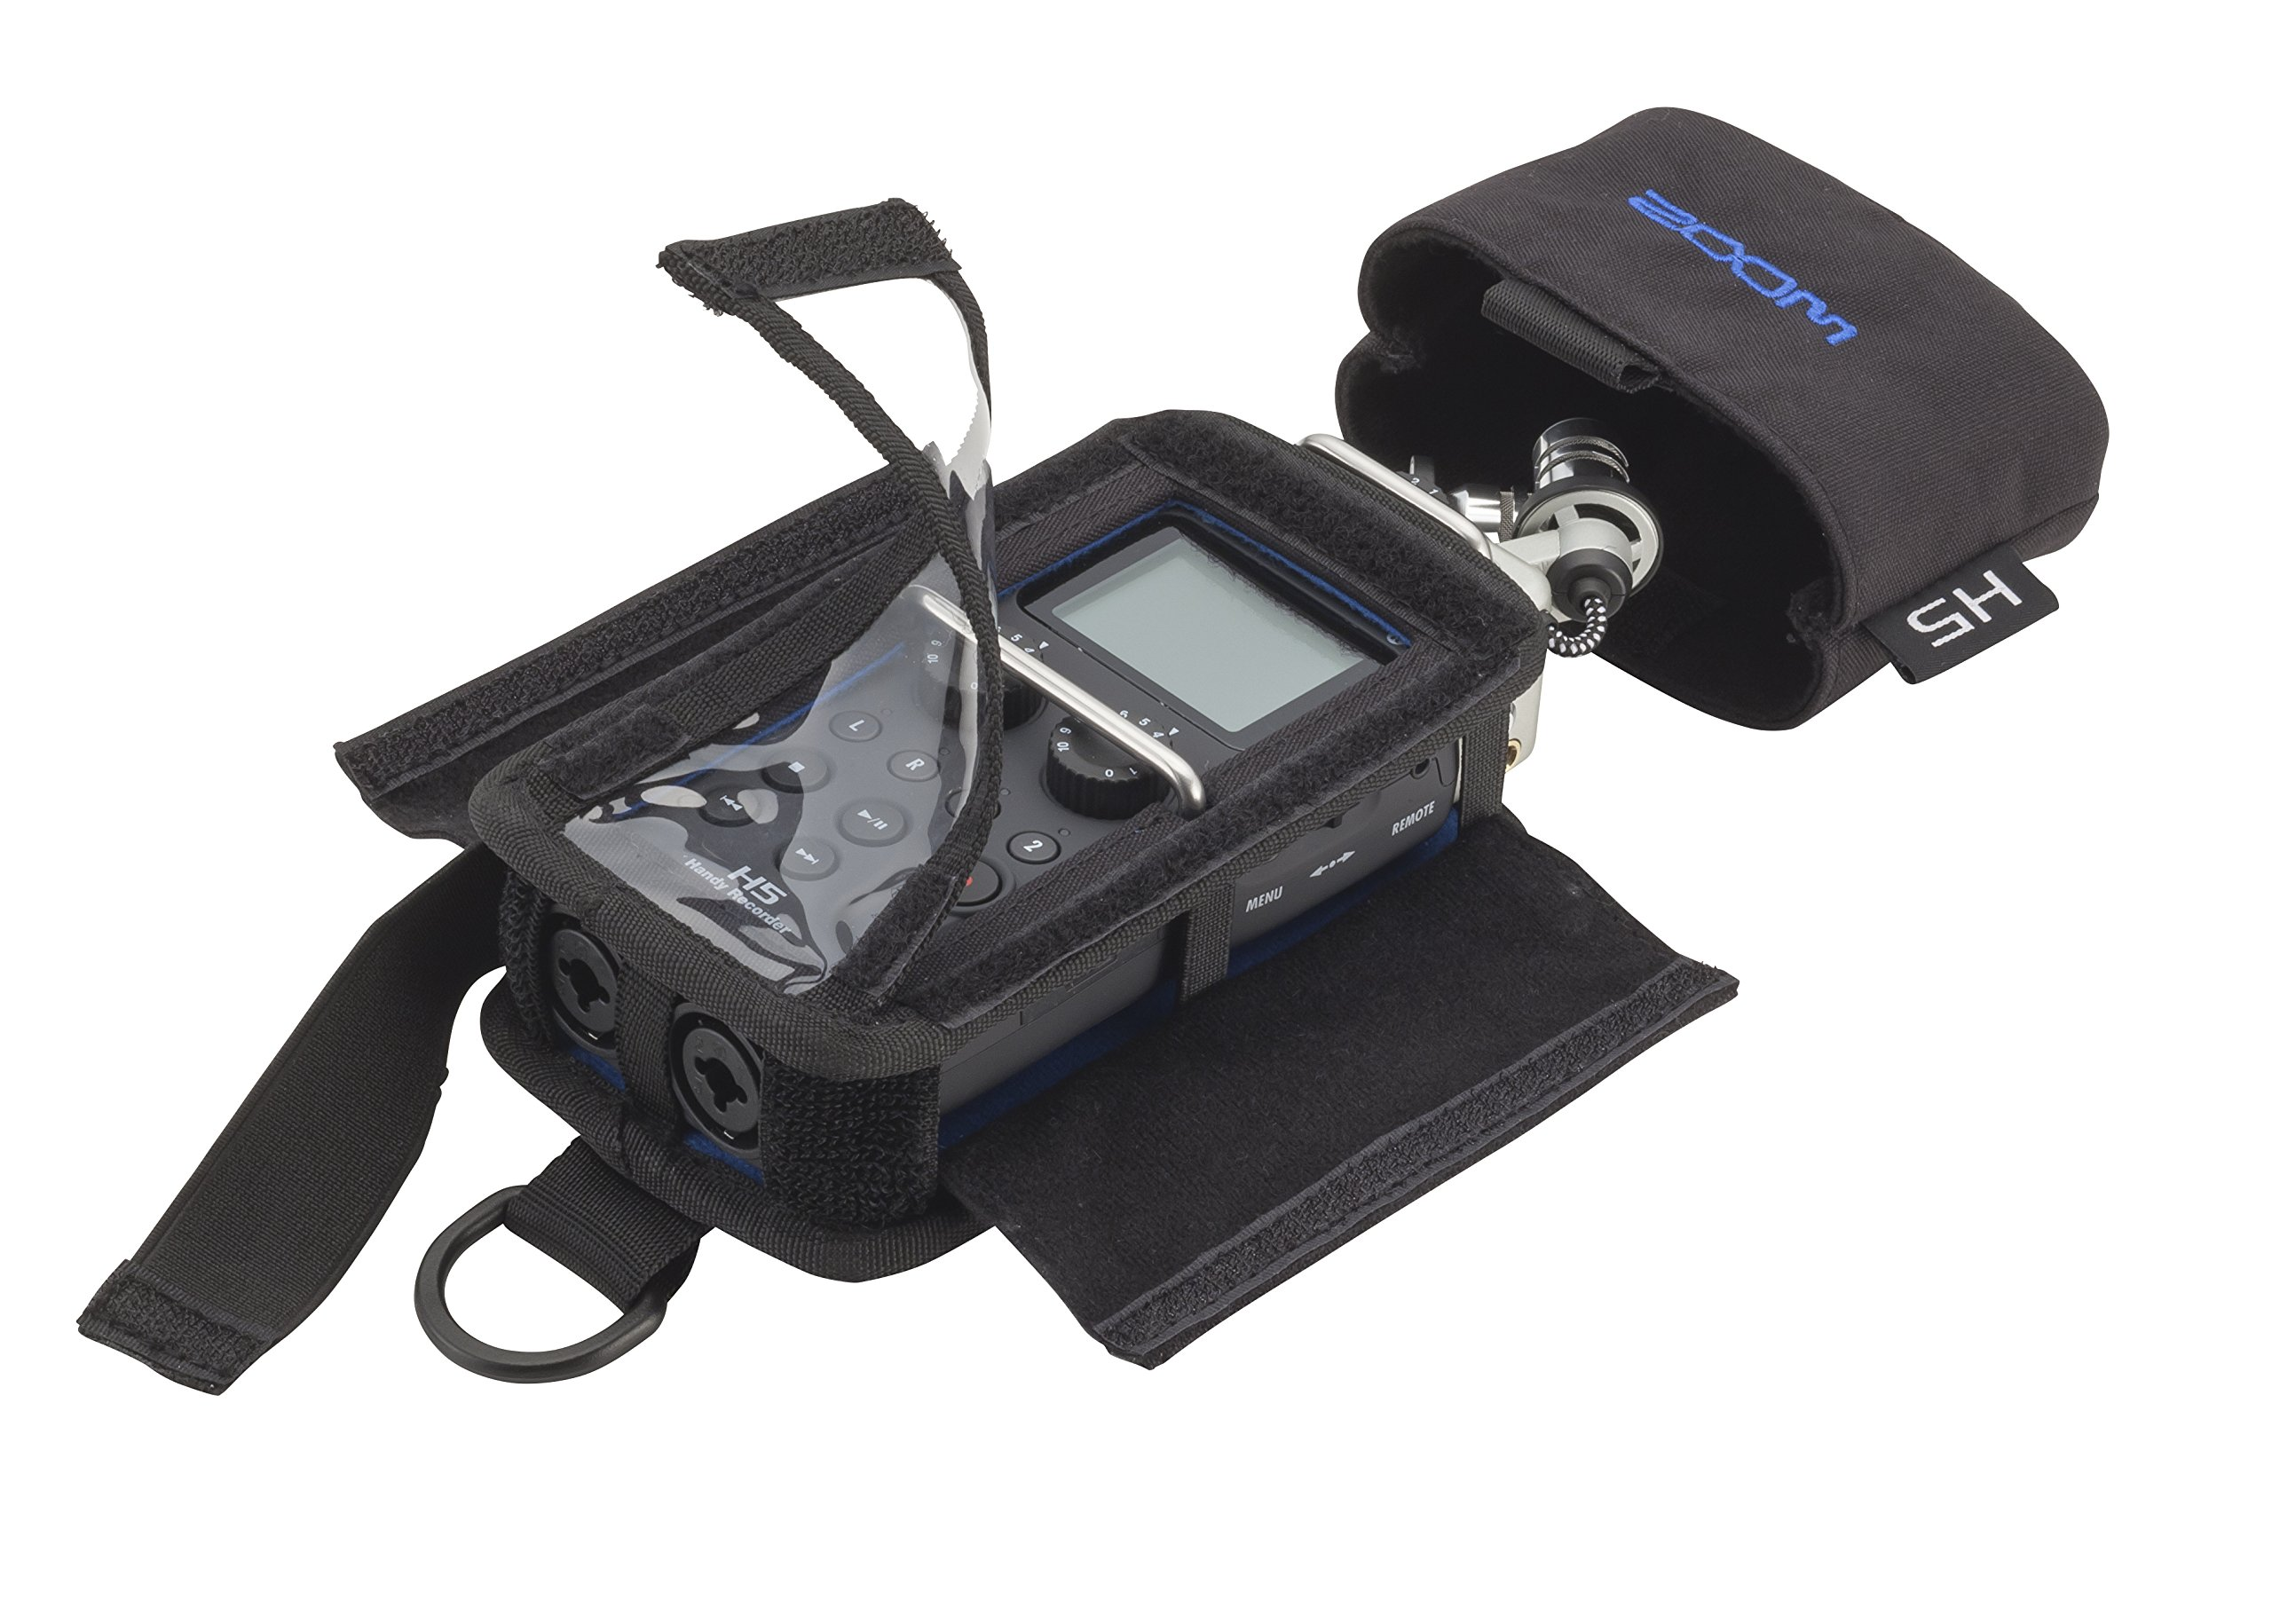 Zoom H5 Handy Recorder & PCH-5 Protective Case - Bundle by Zoom (Image #7)